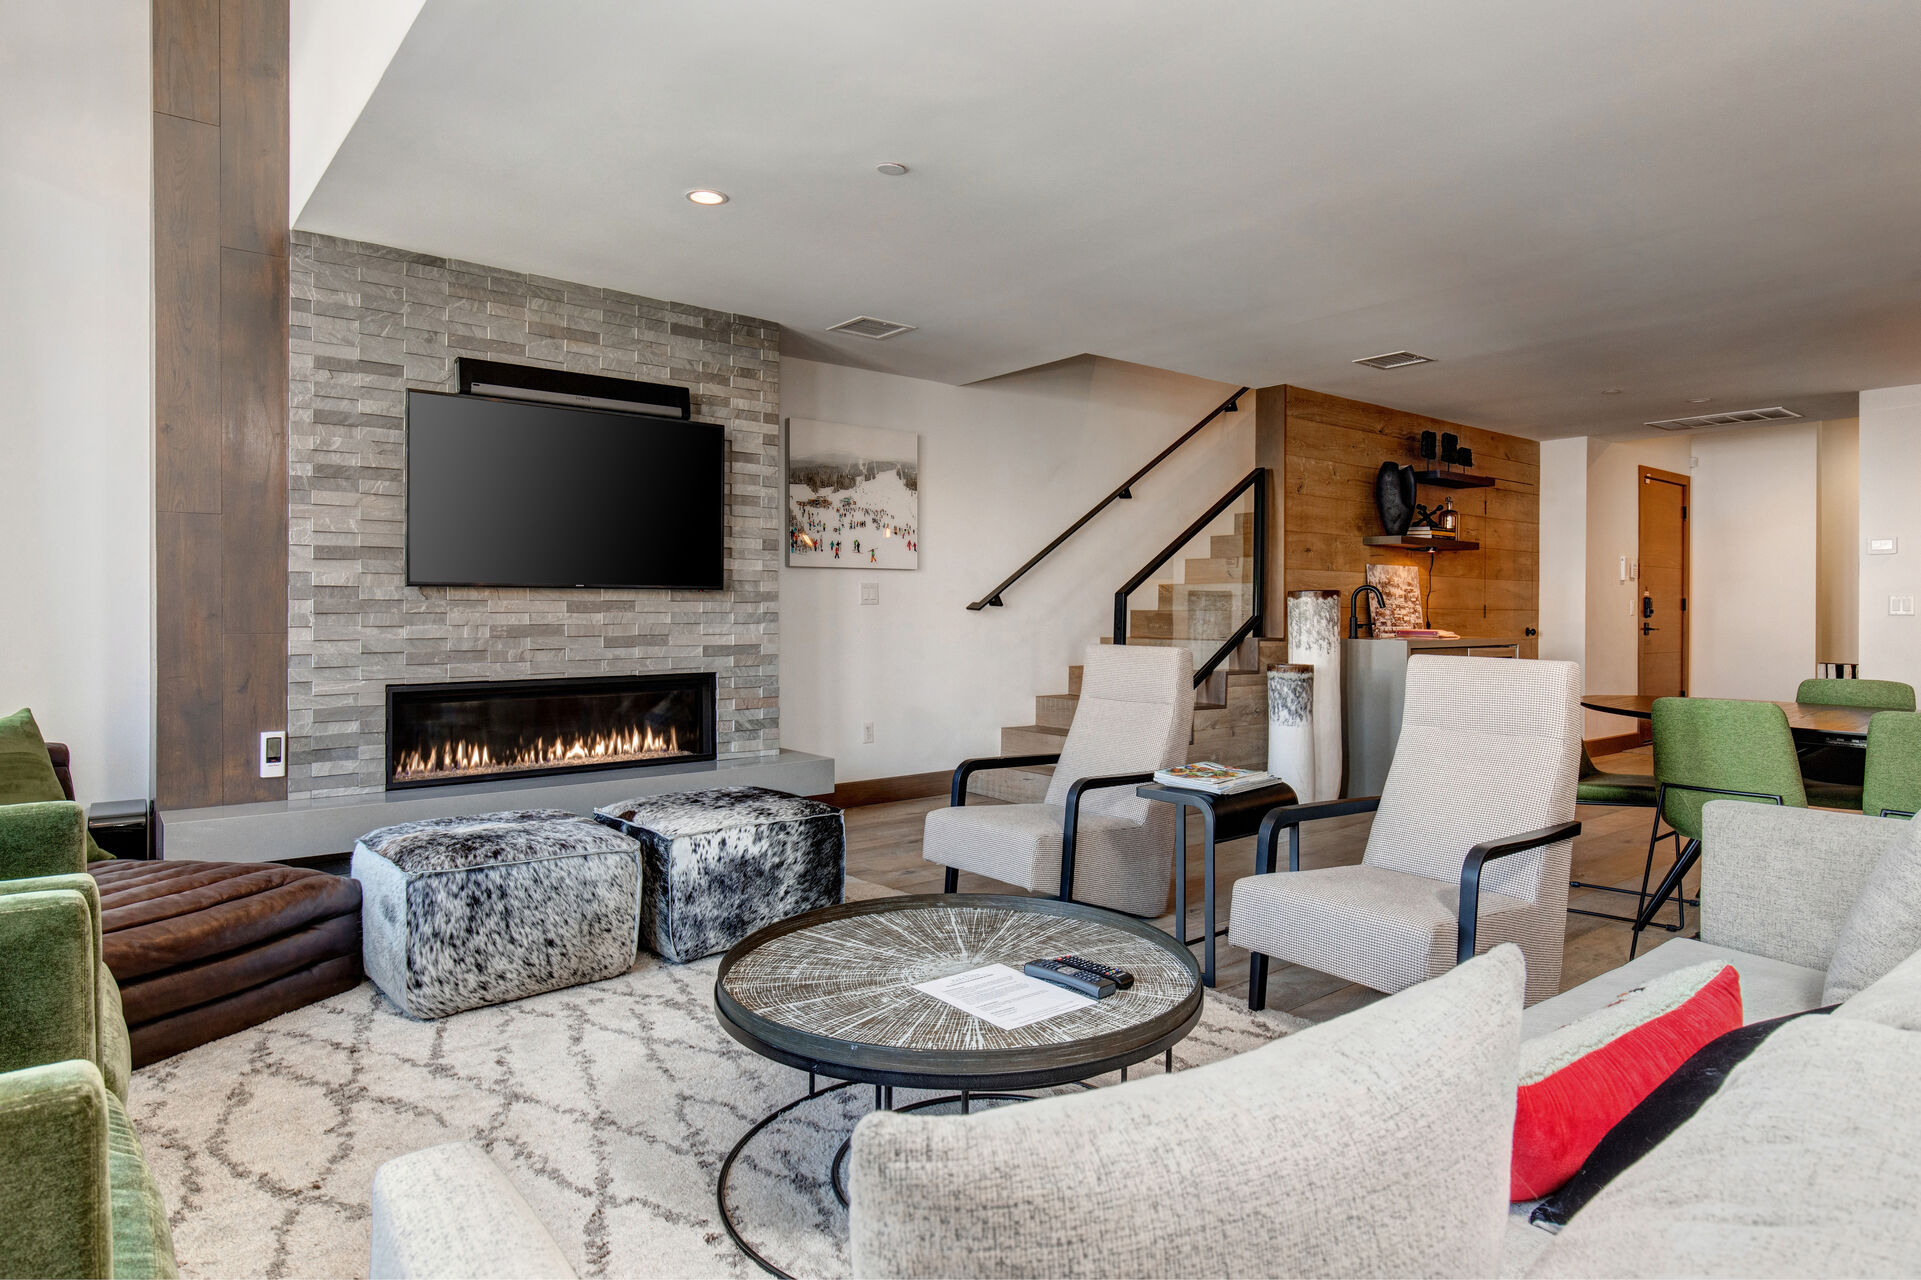 Spacious Living Room with Professionally Decorated and Comfortable Furnishings, Gas Fireplace, a 55